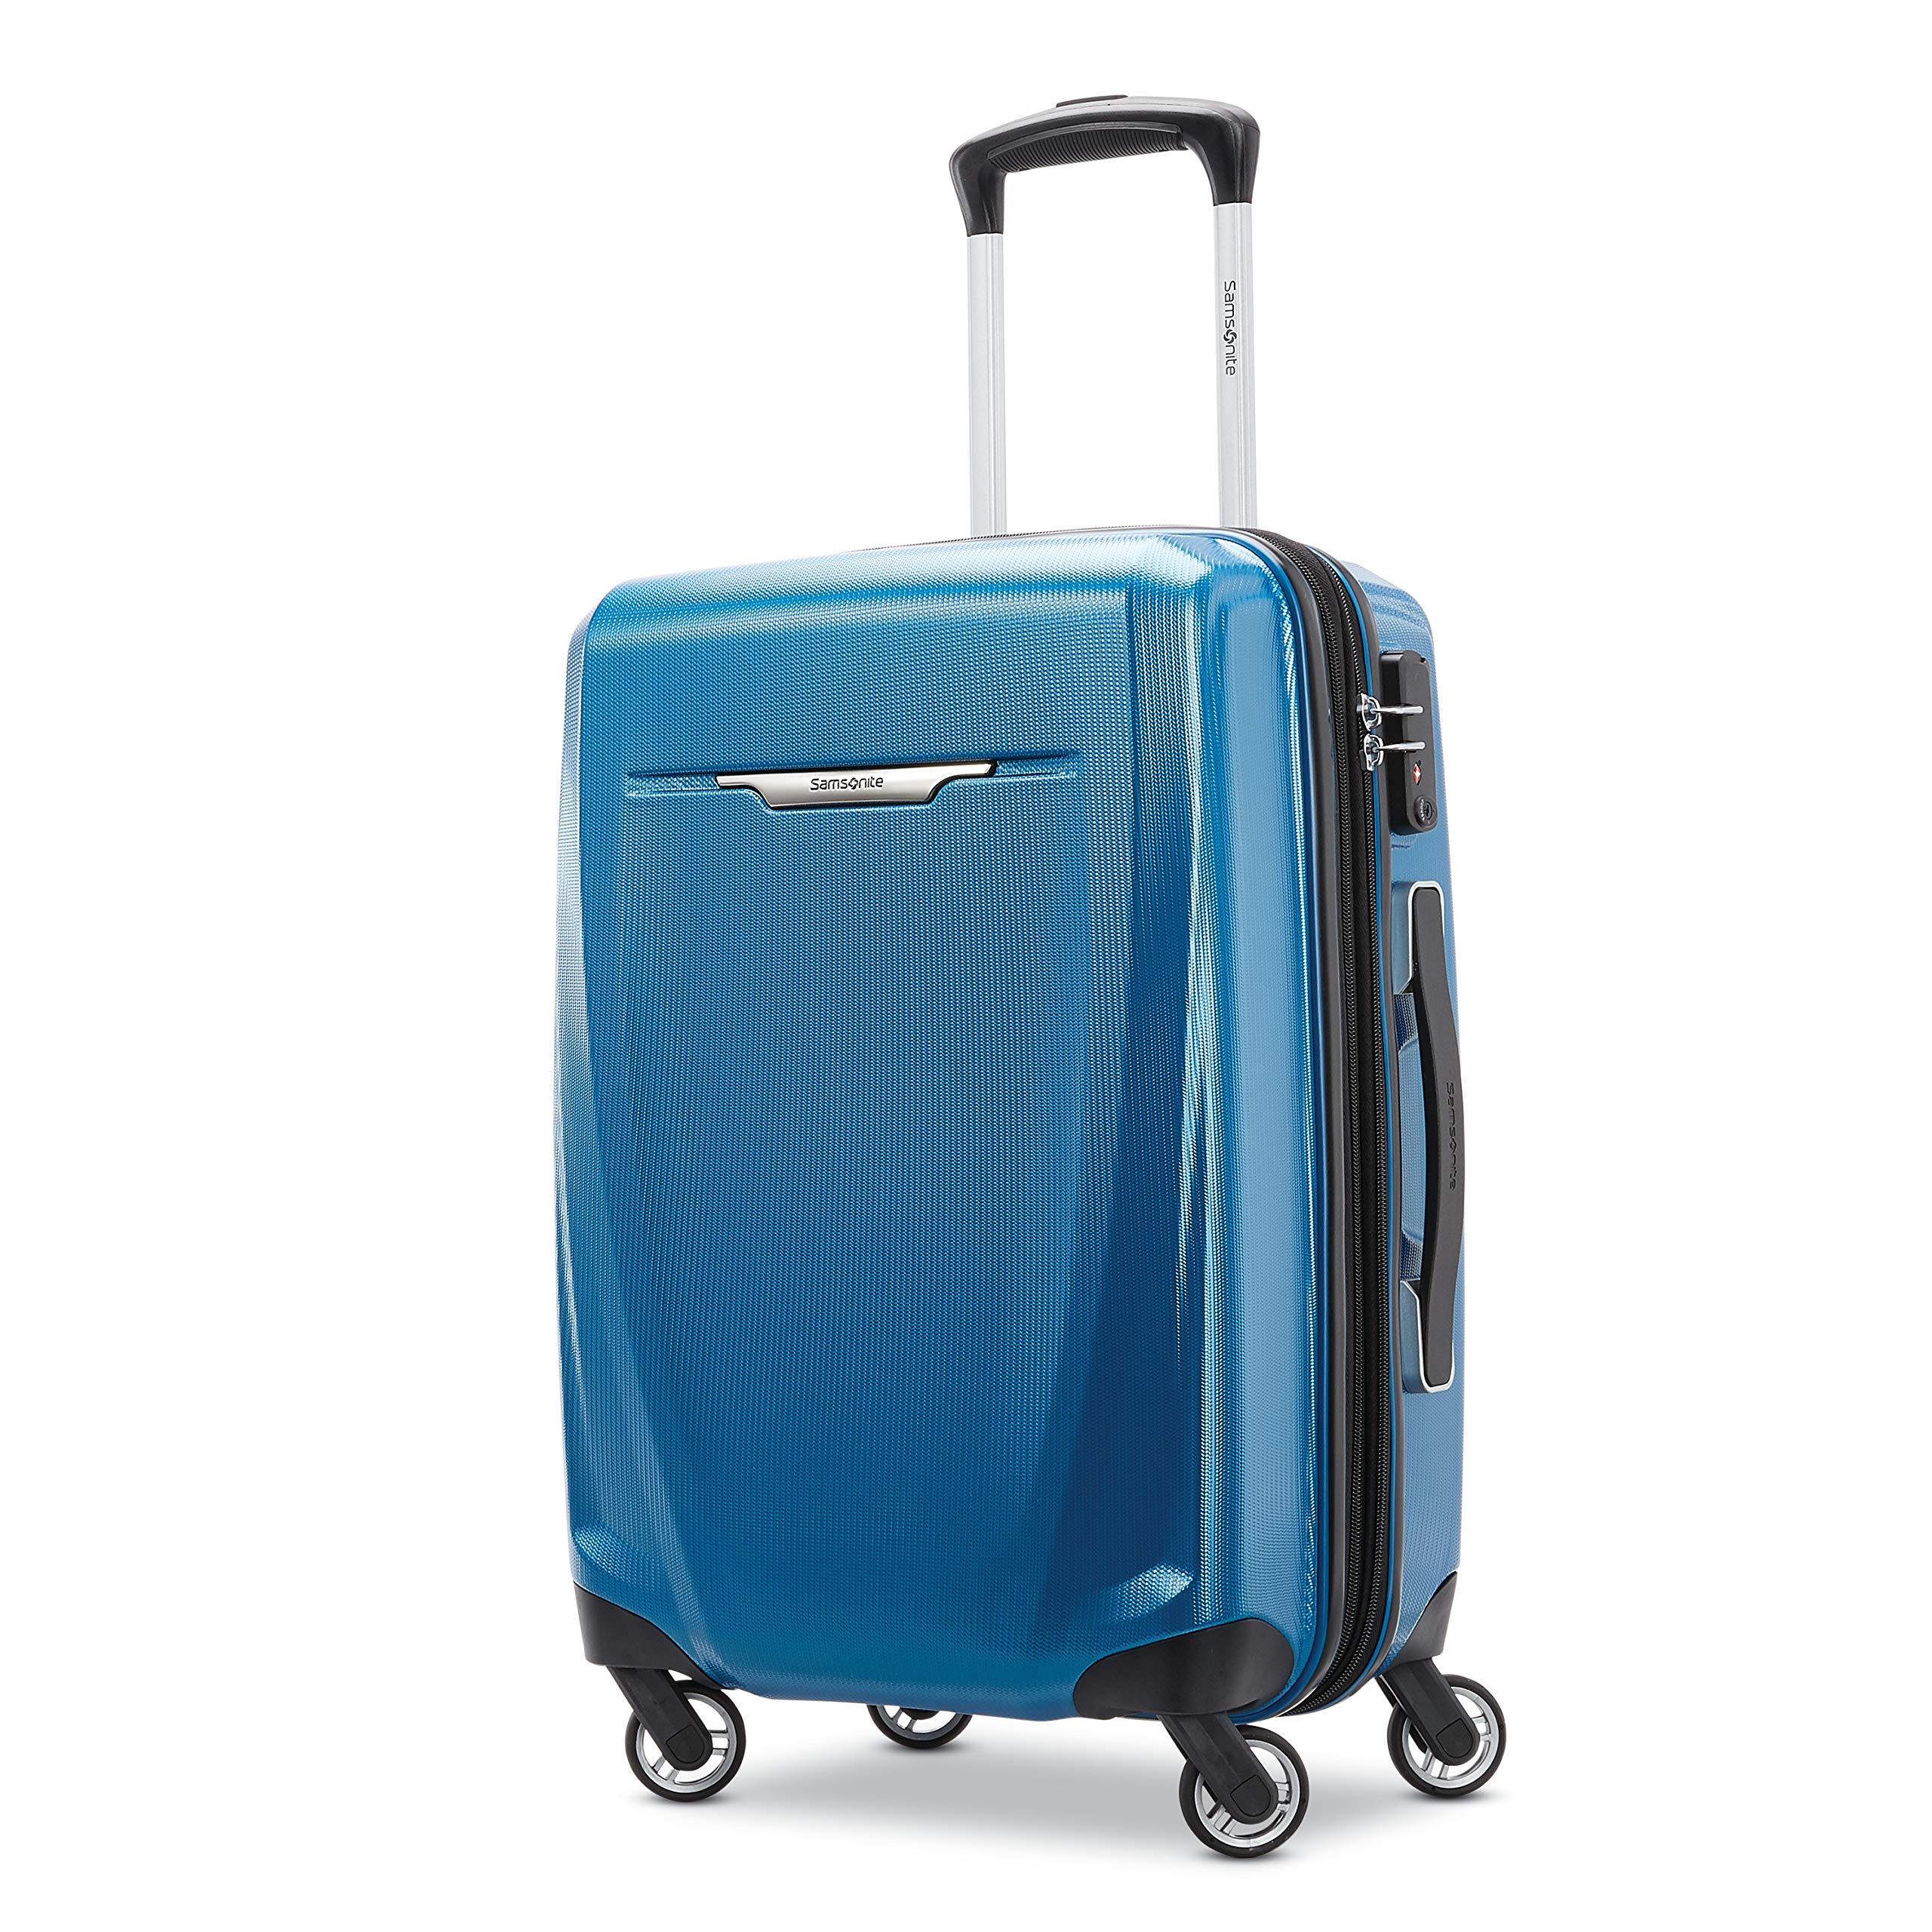 Samsonite Winfield Hardside Luggage Spinner